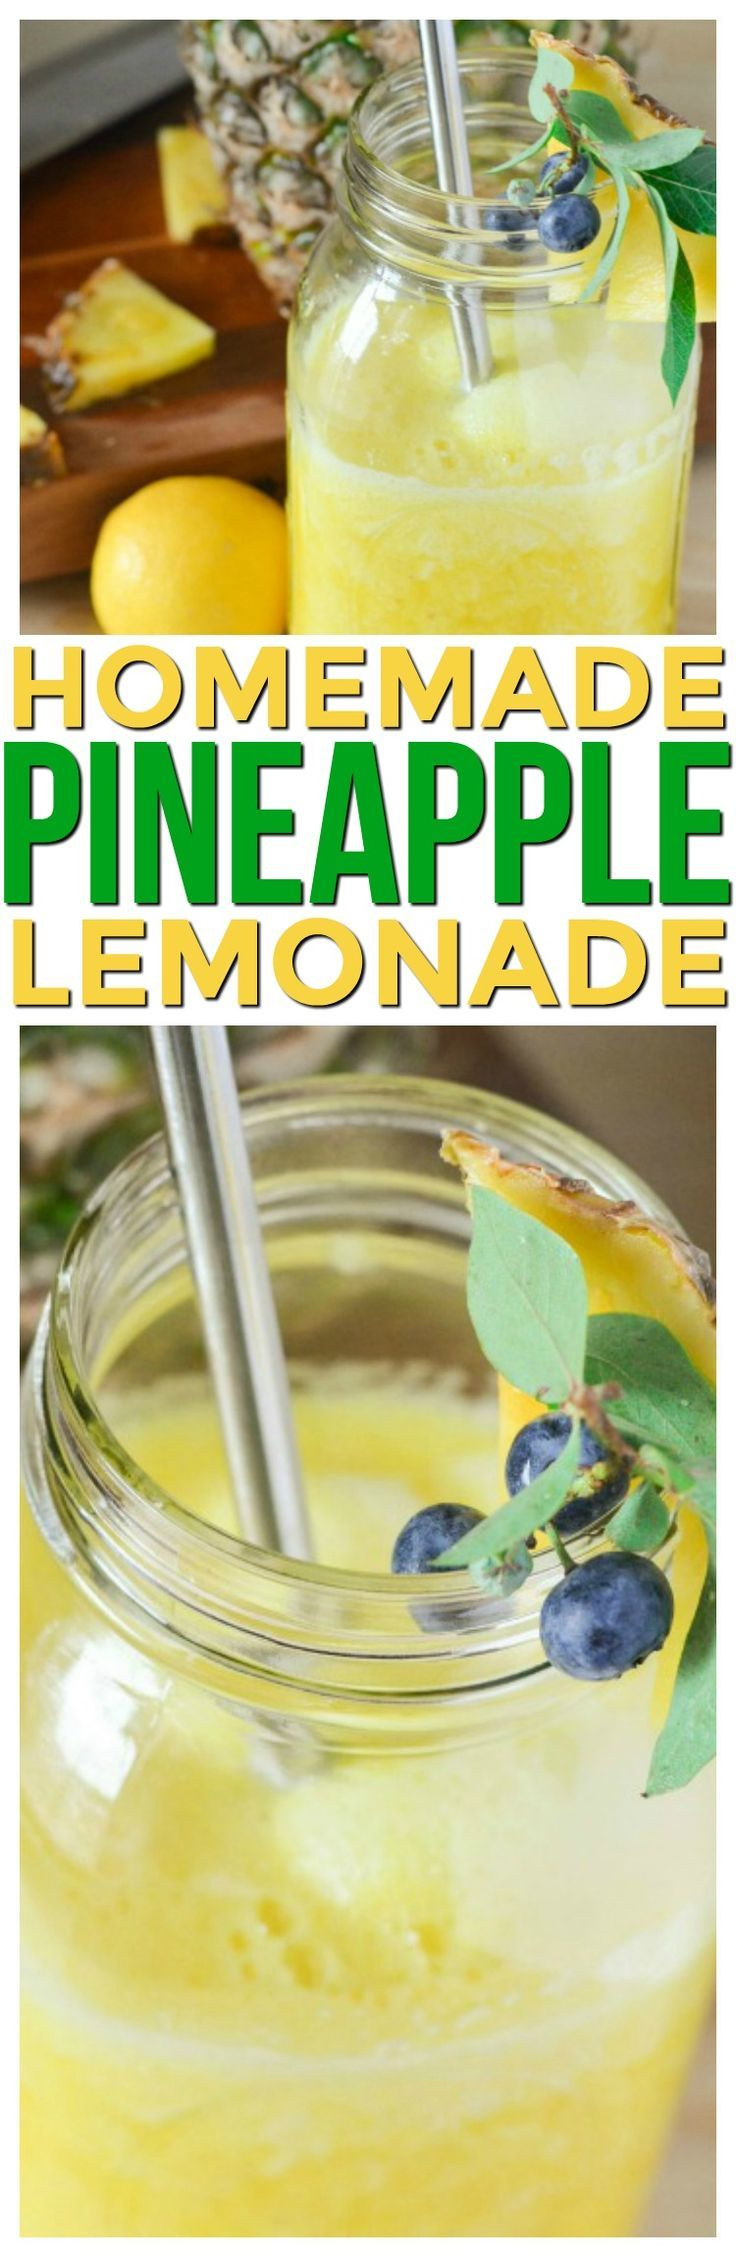 This frosty Pineapple Lemonade Recipe Homemade is perfection! Make it if you need a refreshing drink or homemade drink recipes nonalcoholic for kids it's a healthy summer beverage.  via /KnowYourProduce/ (smoothie recipes for kids detox waters)